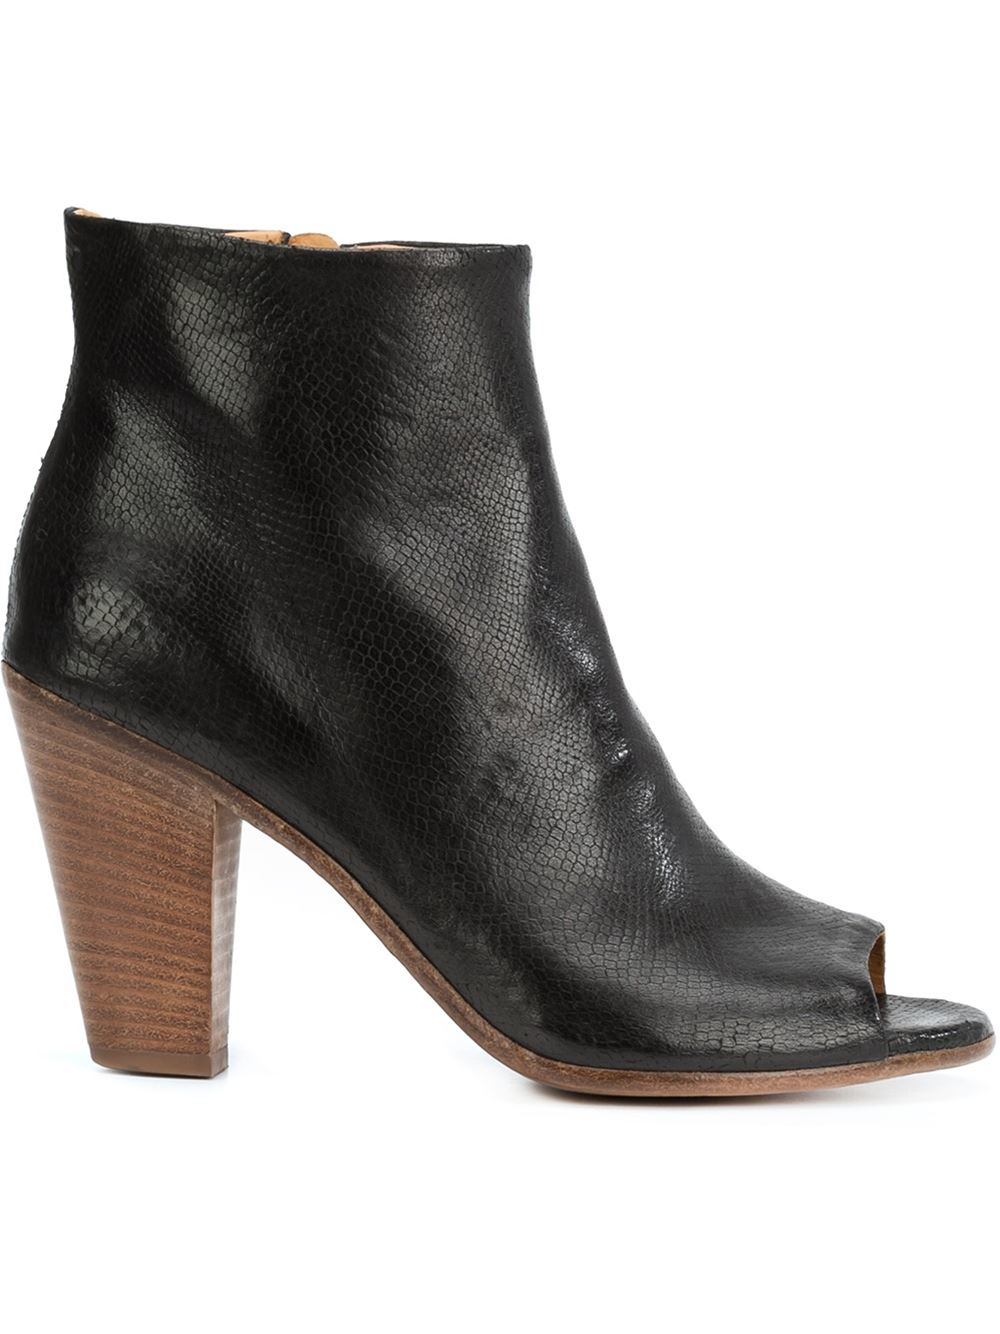 officine creative peep toe ankle boots in black lyst